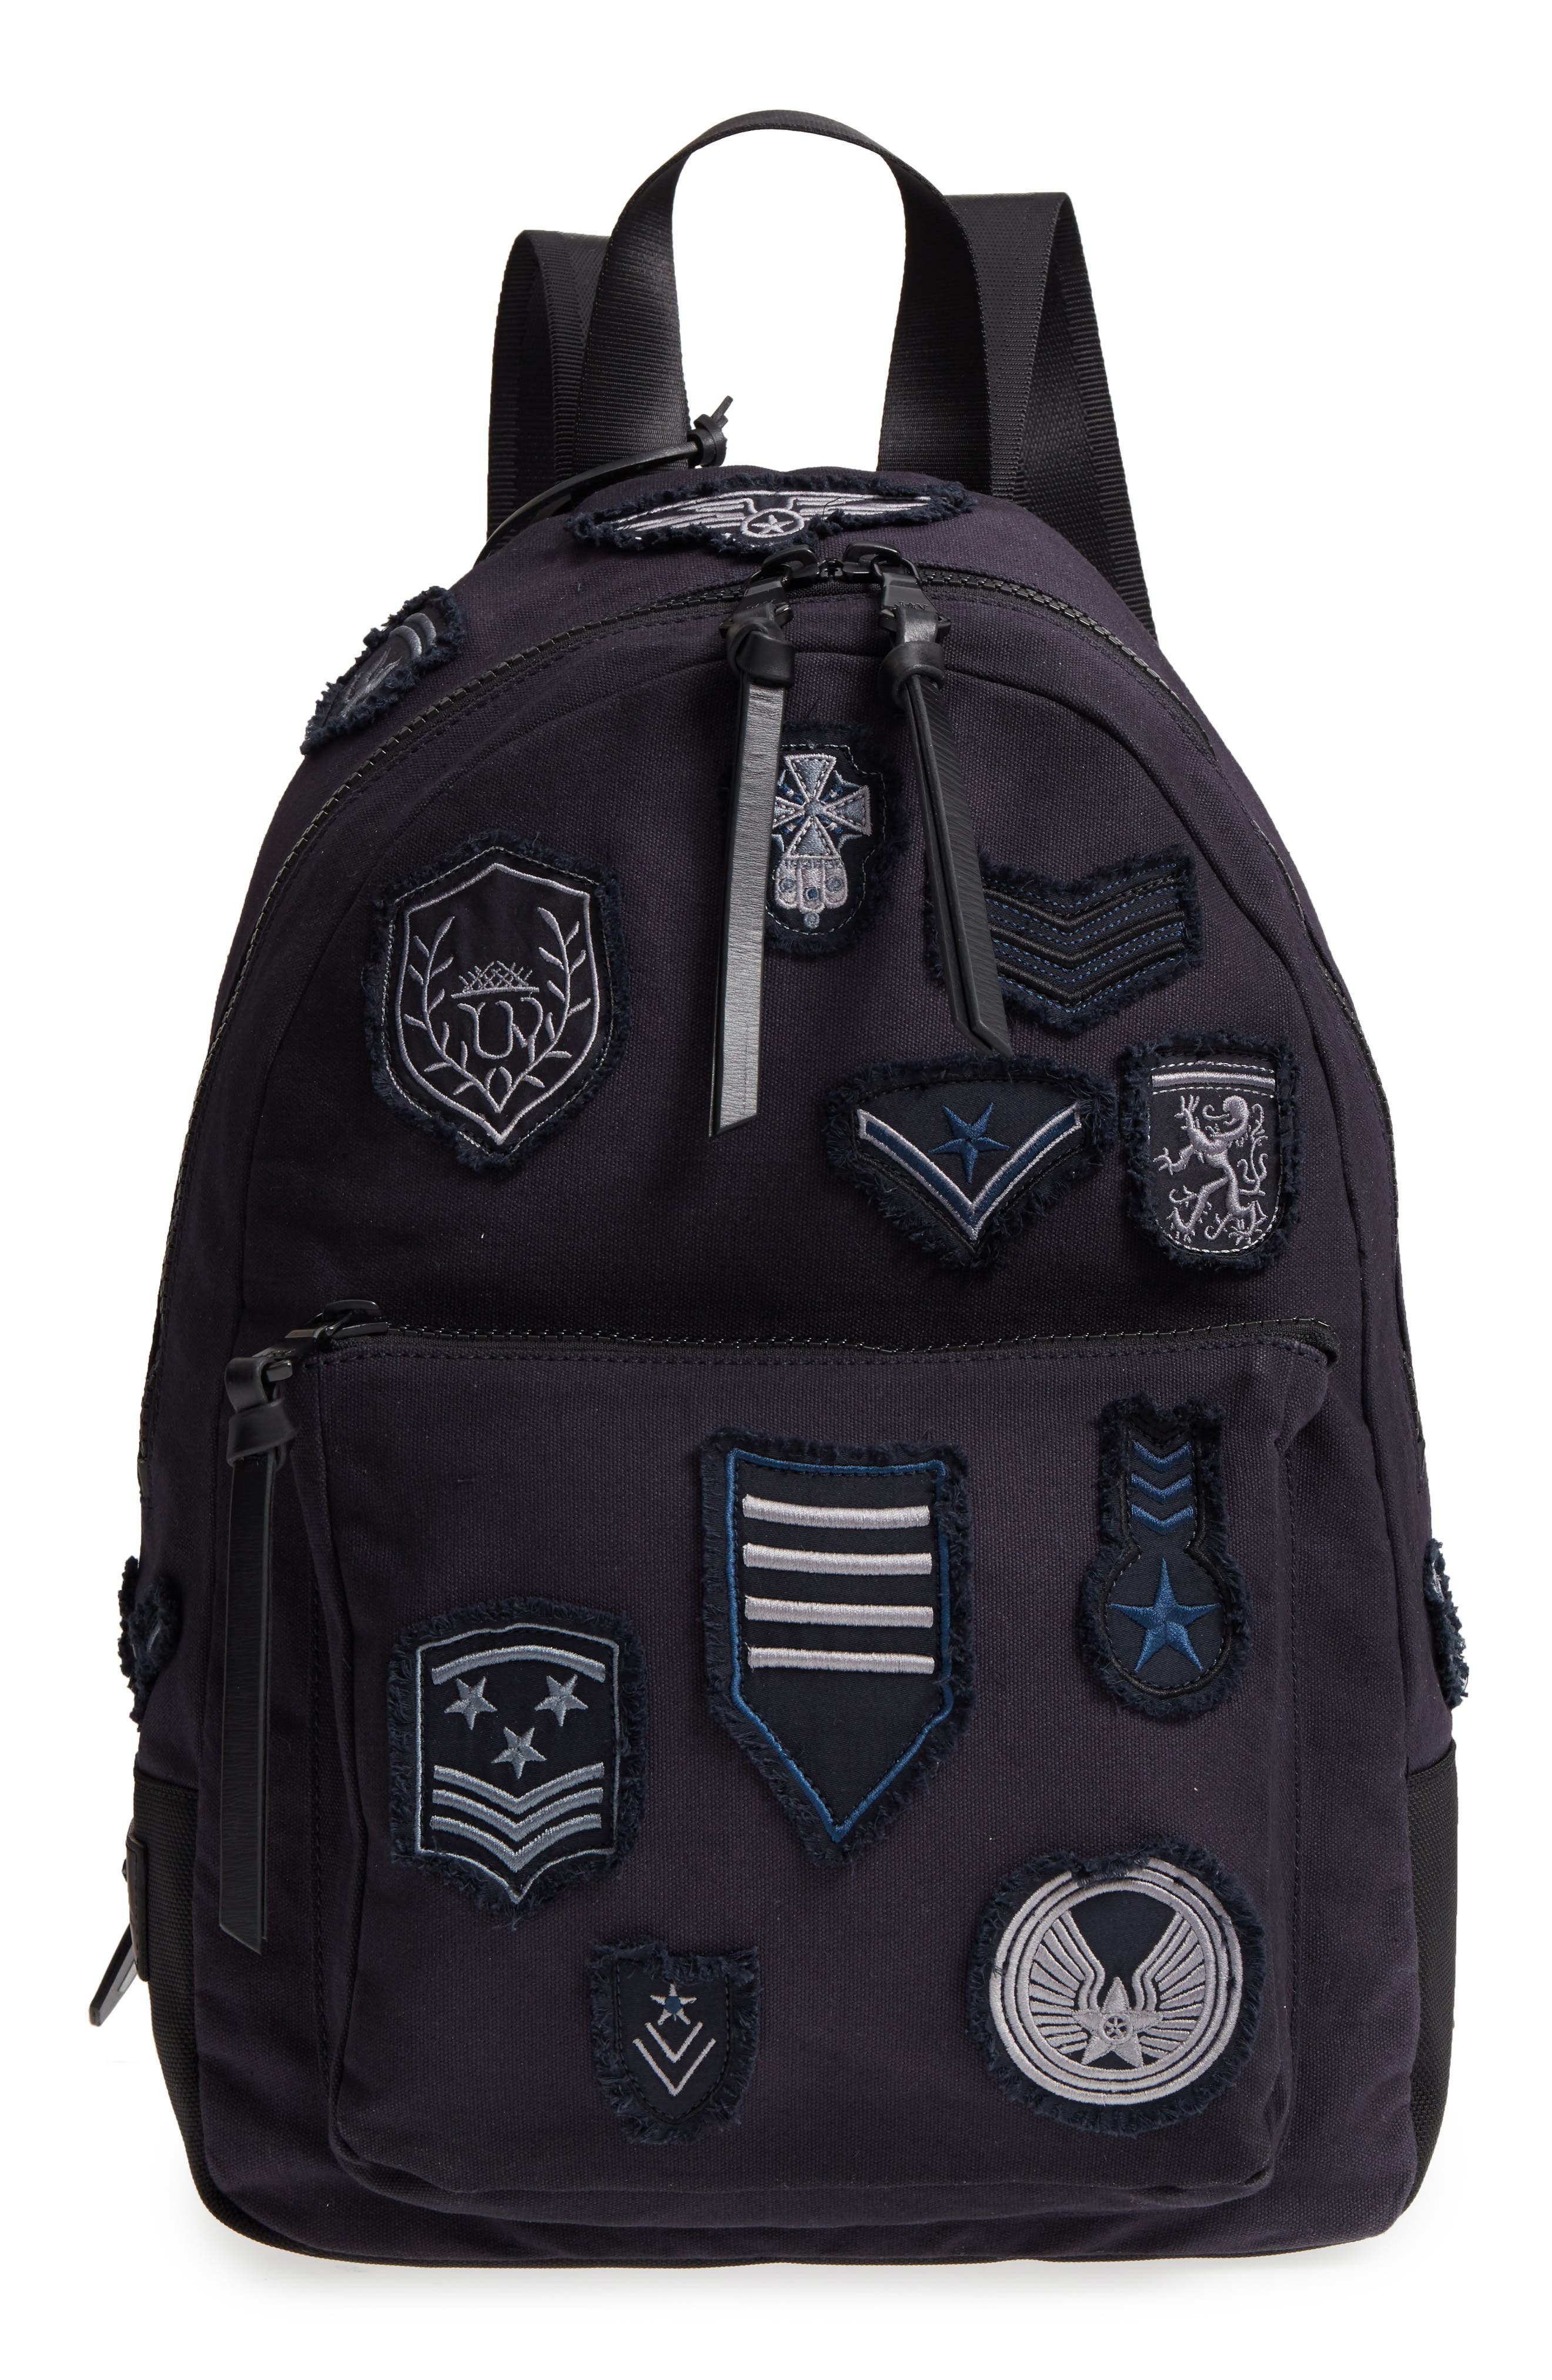 Gibson Patch Backpack,                         Main,                         color, Midnight